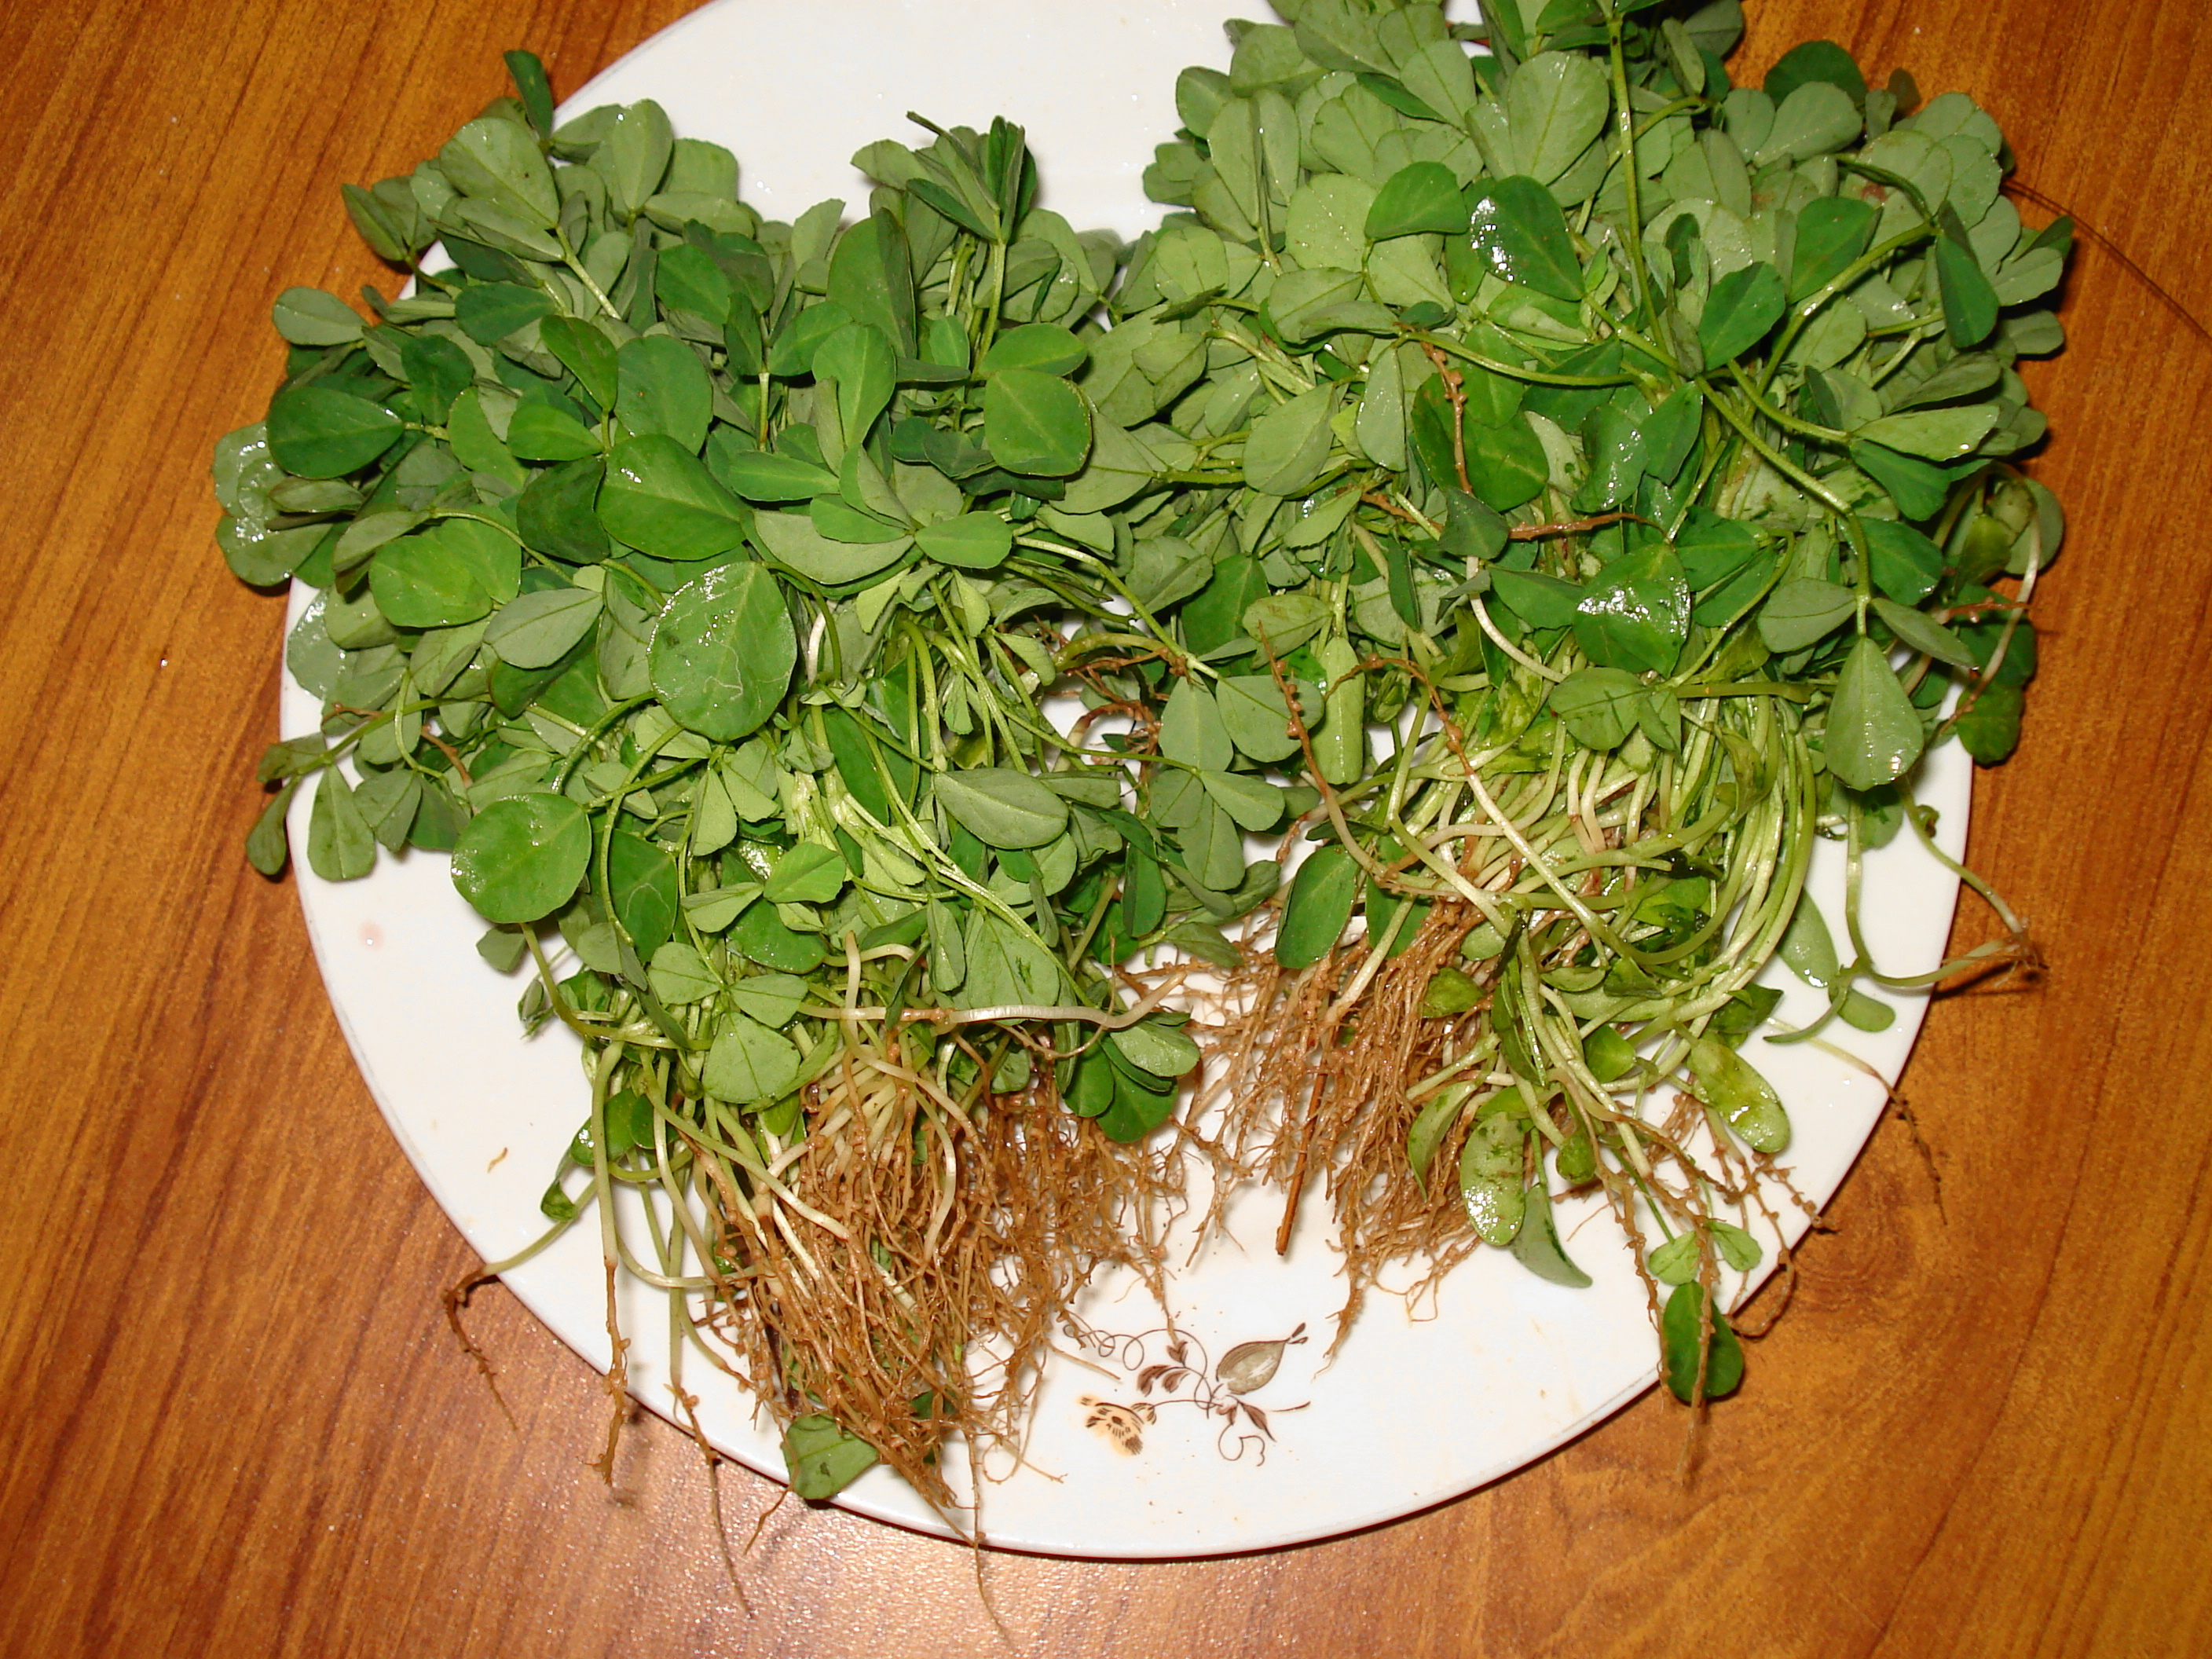 File:Qasuri Methi.JPG - Wikimedia Commons